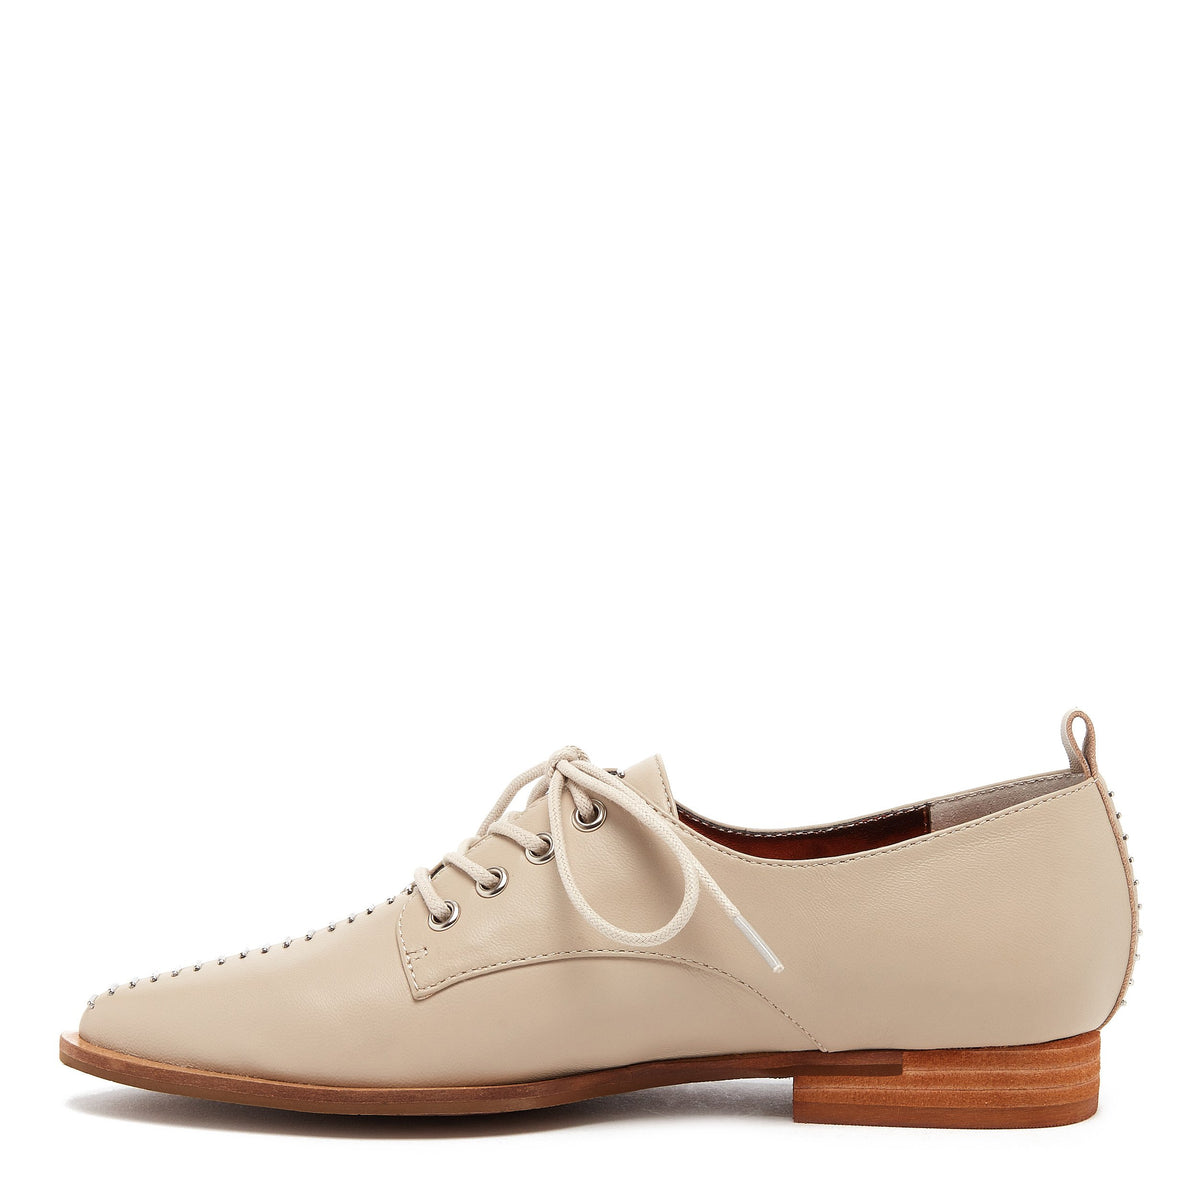 Kelsi Dagger Savas Whitewash Leather Oxford